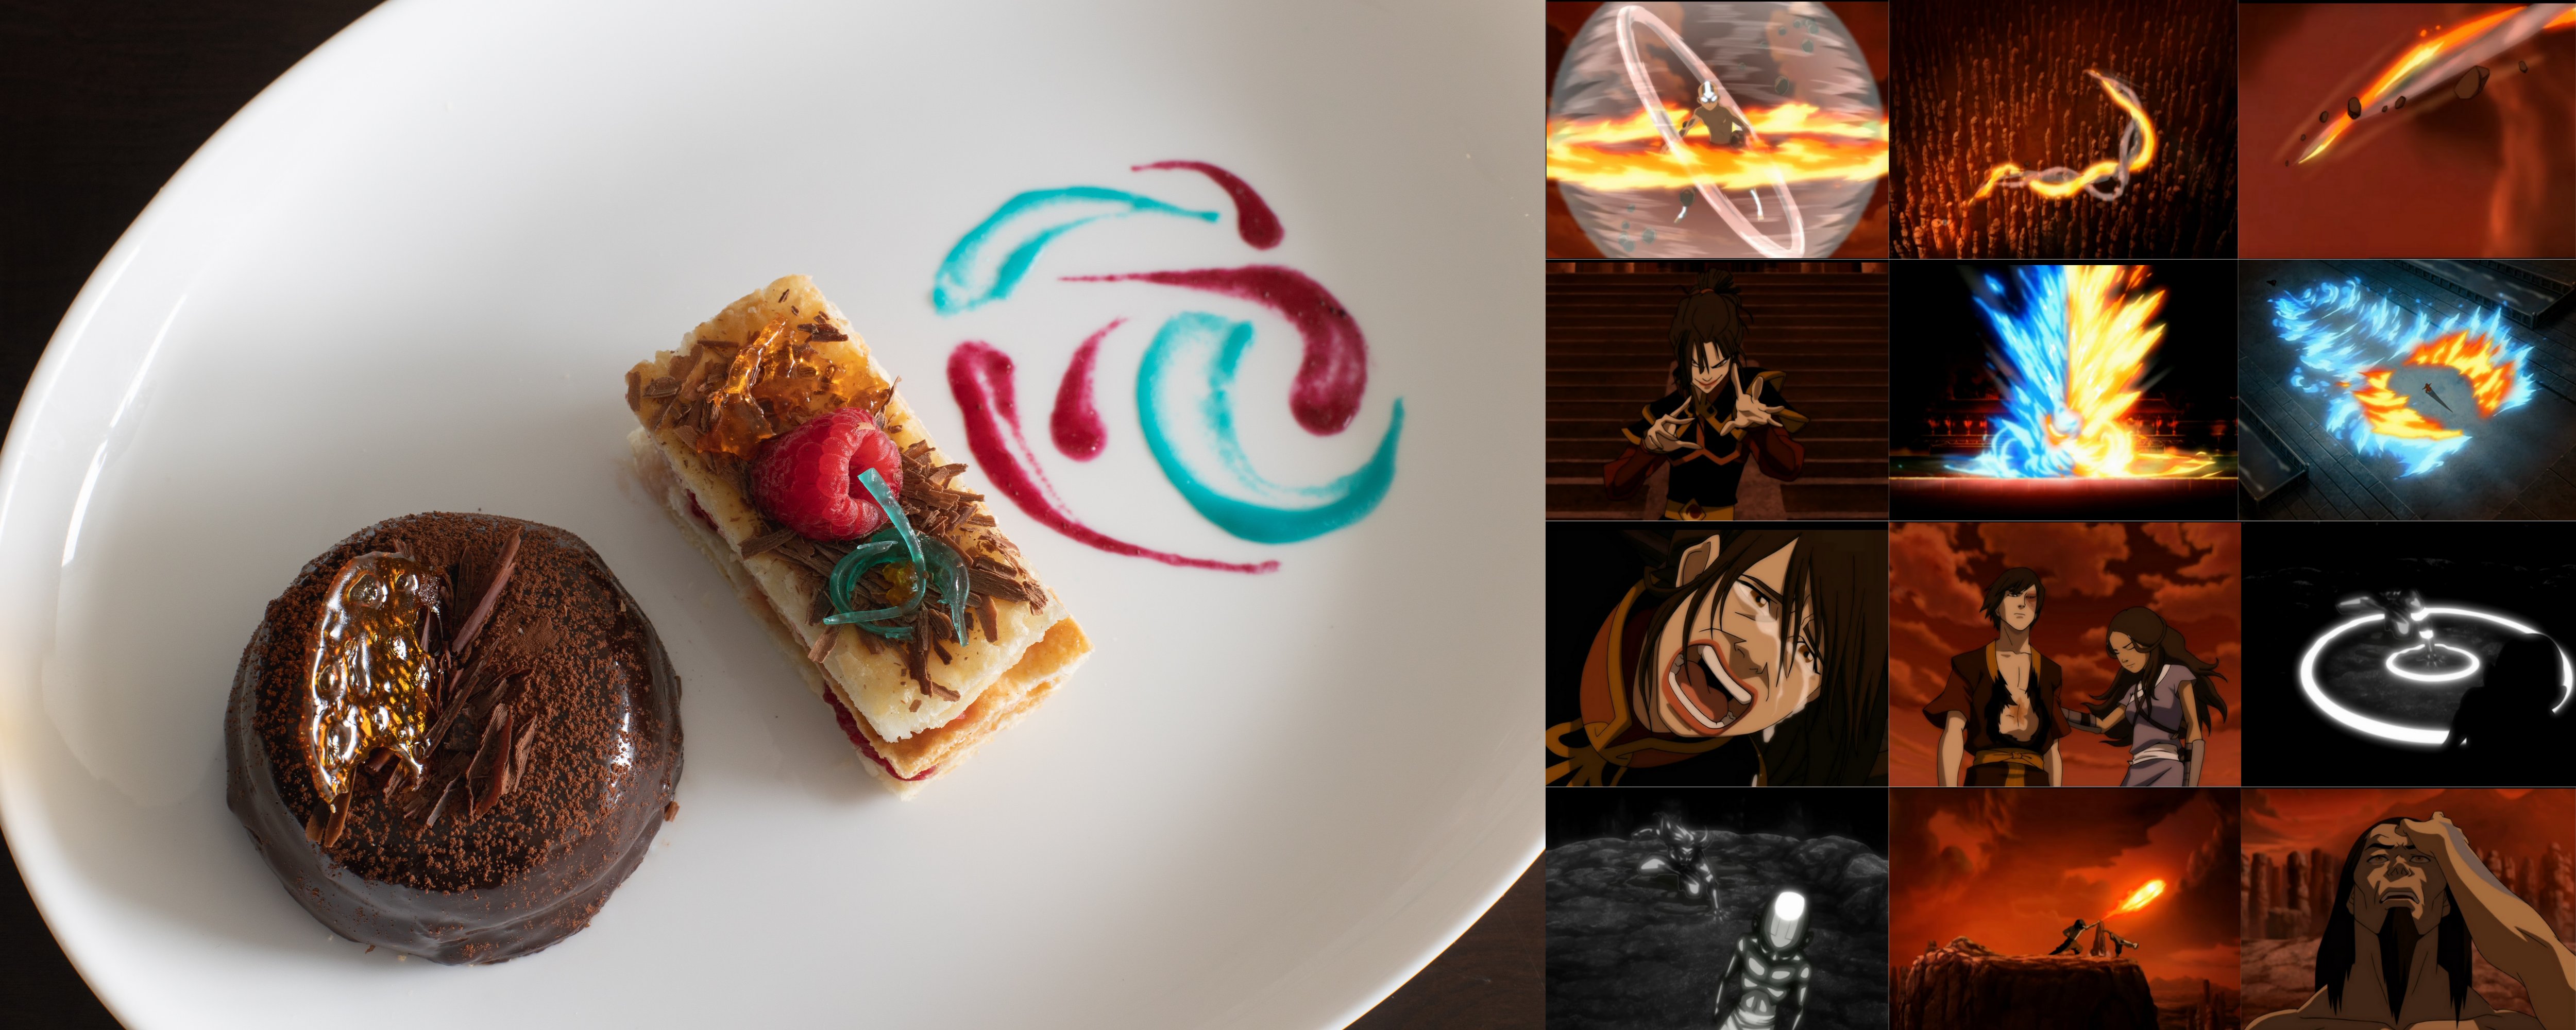 a picture of one of my desserts and scenes from sozins comet